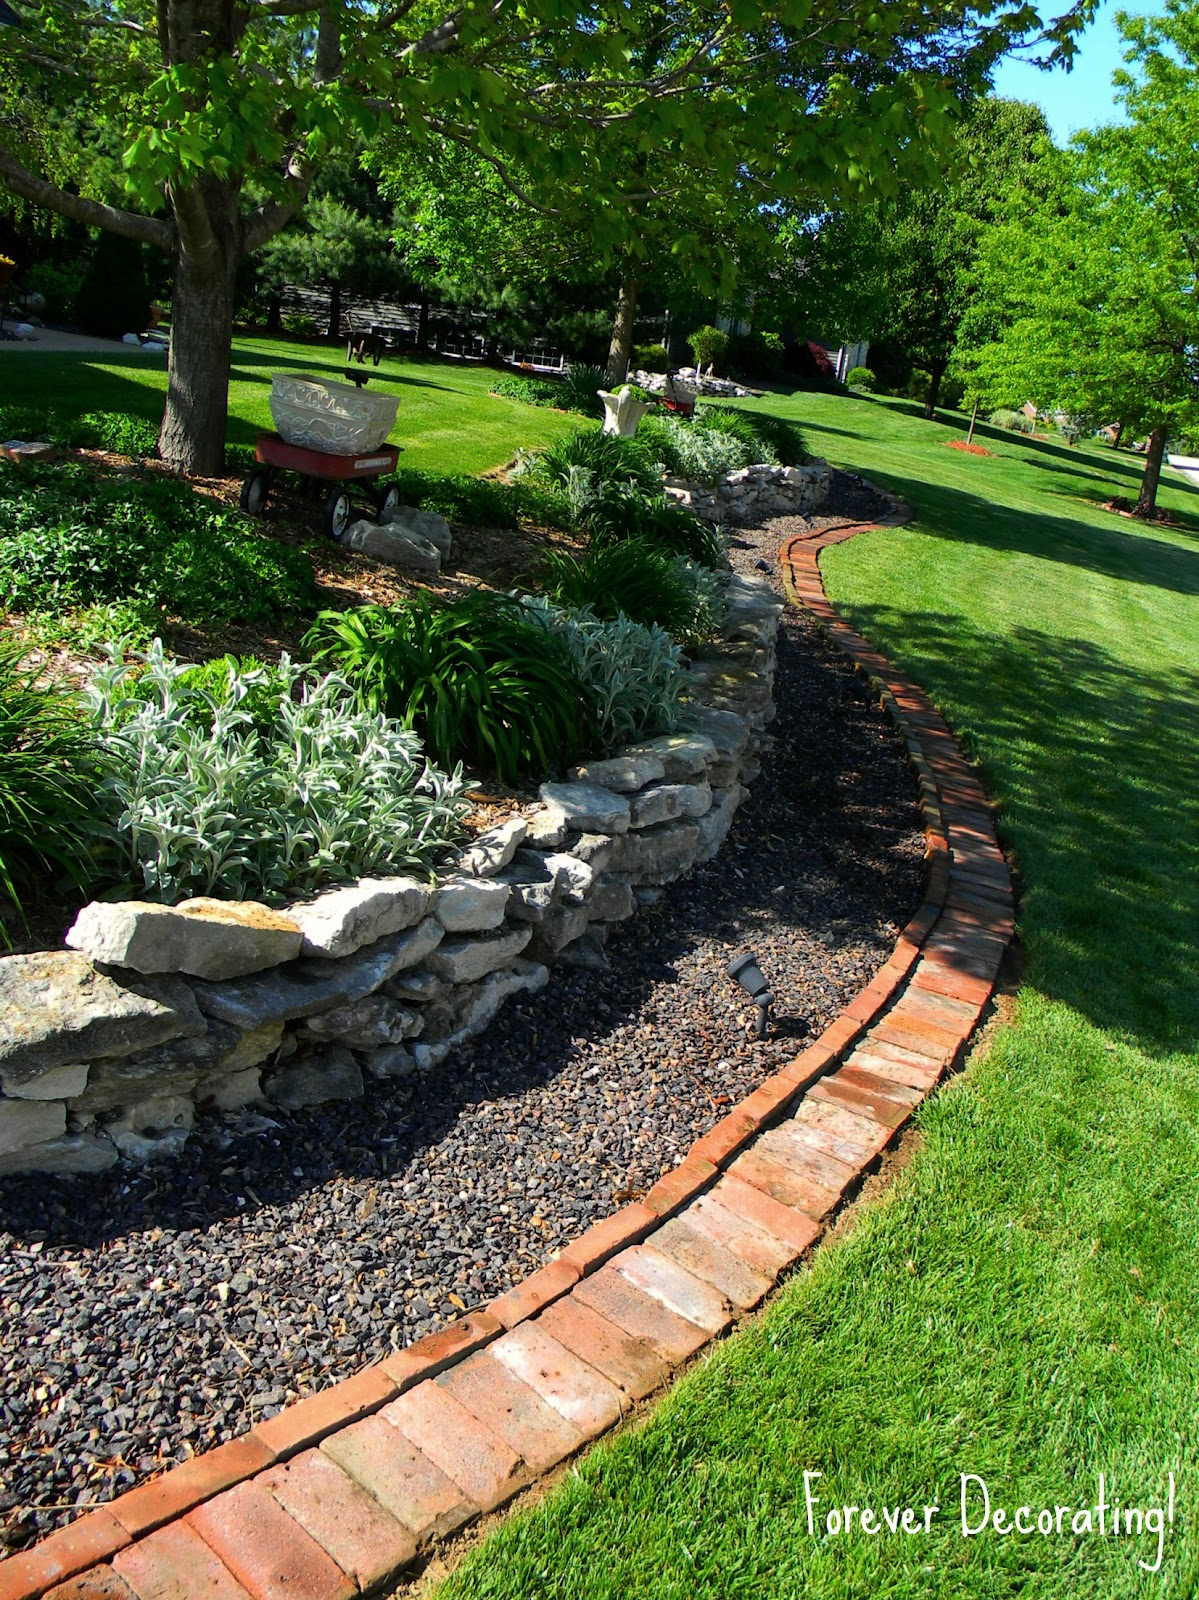 Landscaping Bricks : Forever decorating brick border